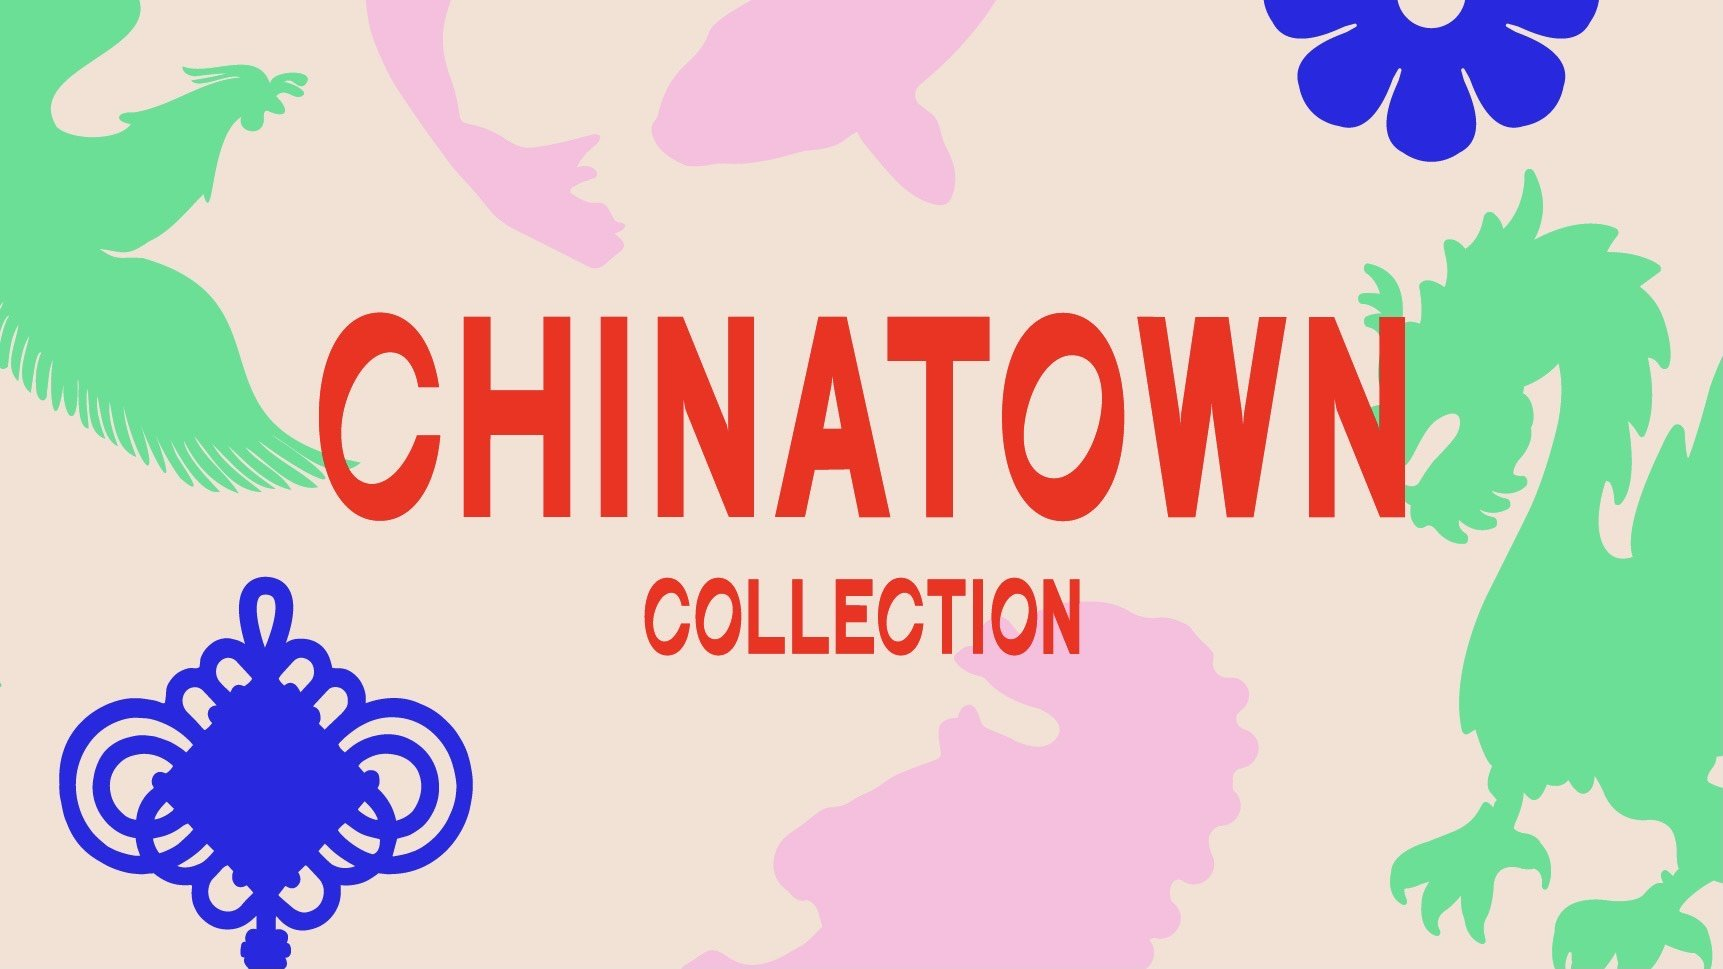 Chinatown Collection graphic